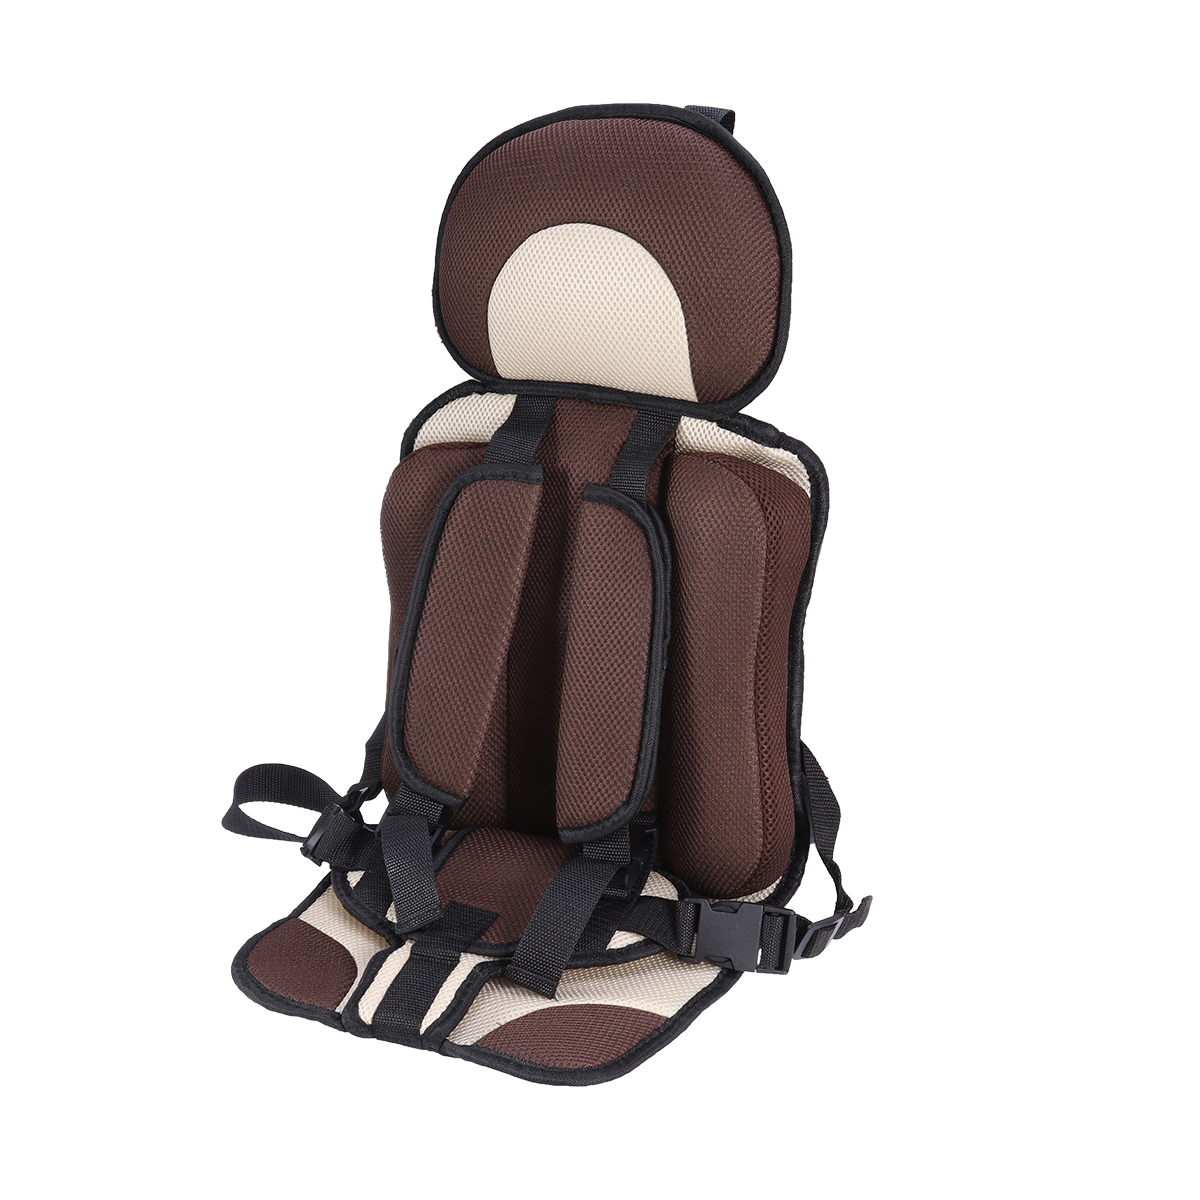 Baby Safety Car Seat Vest Belt Covers Childrens Chairs Kids Seats Coffee